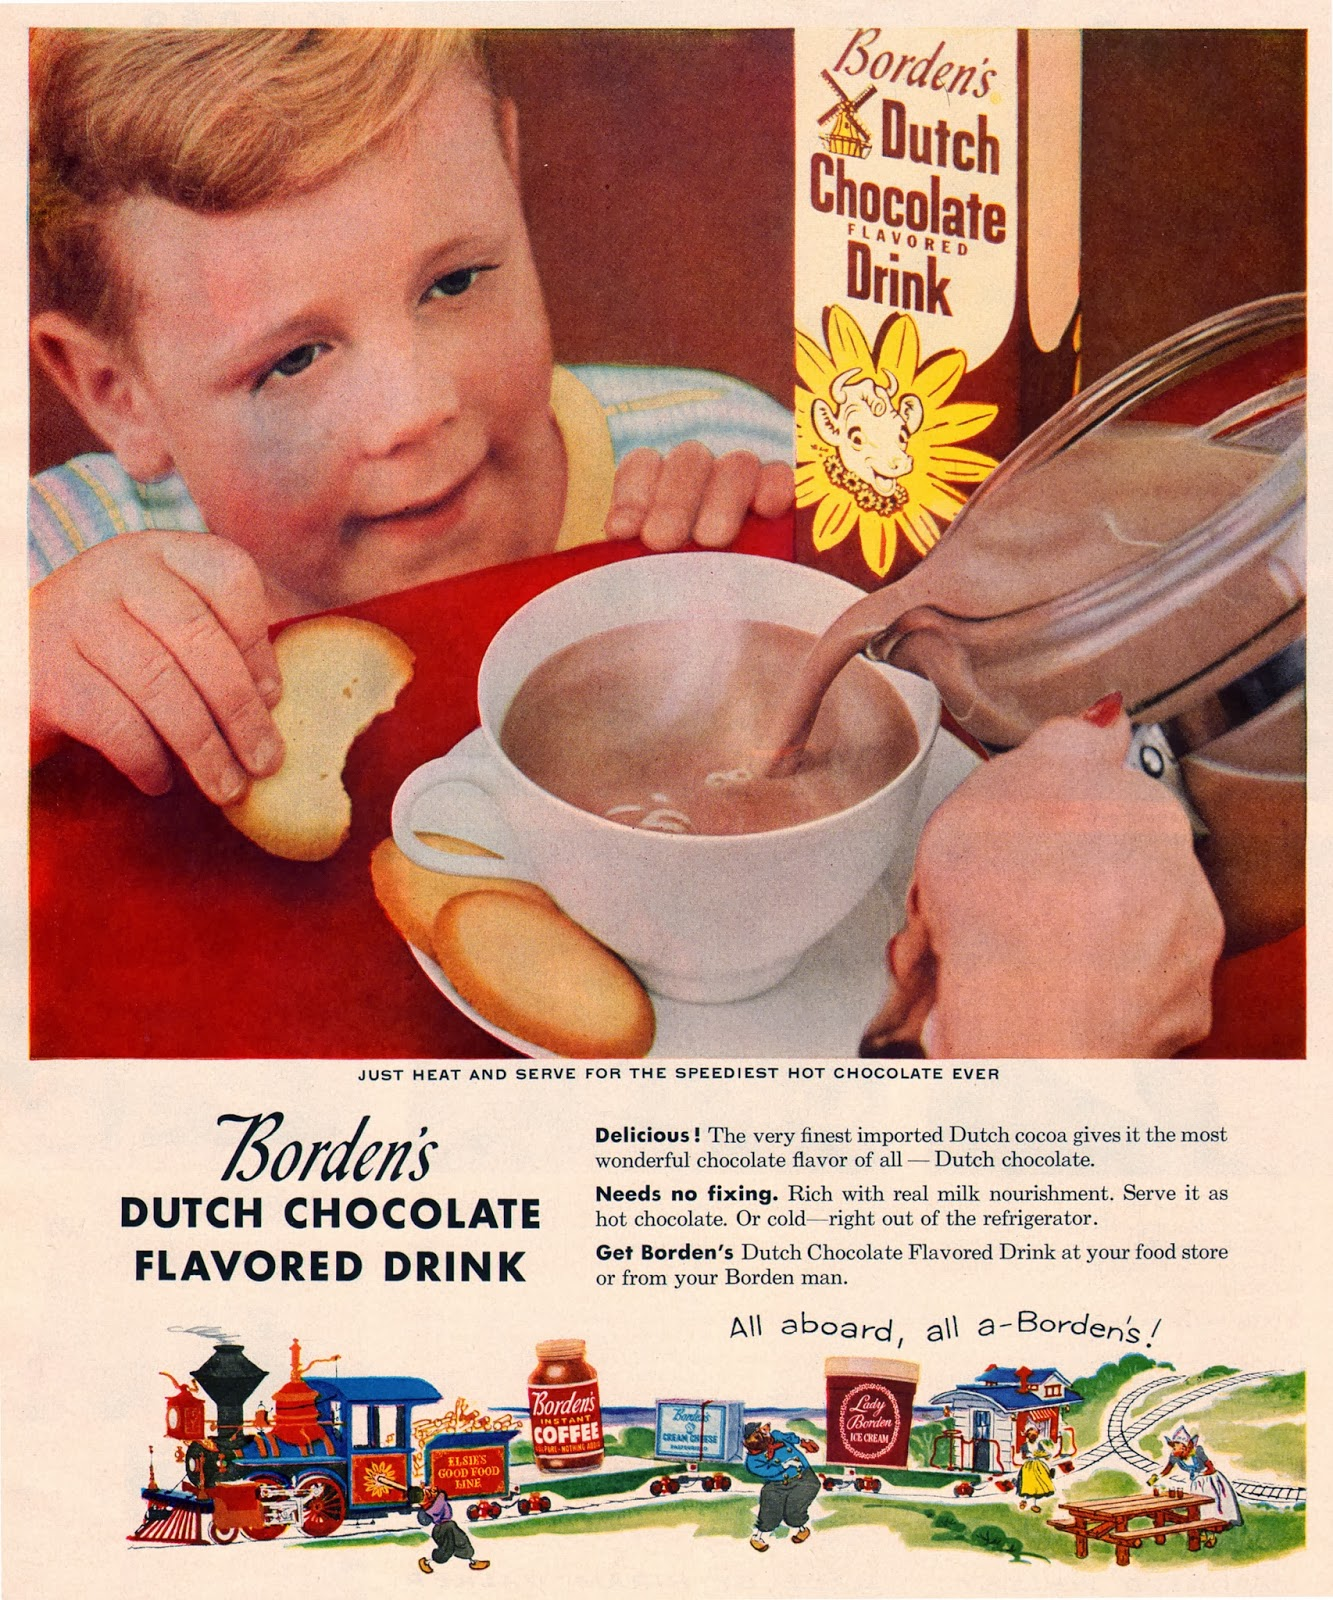 14 Interesting Vintage Food Ads From the 1950s ~ vintage